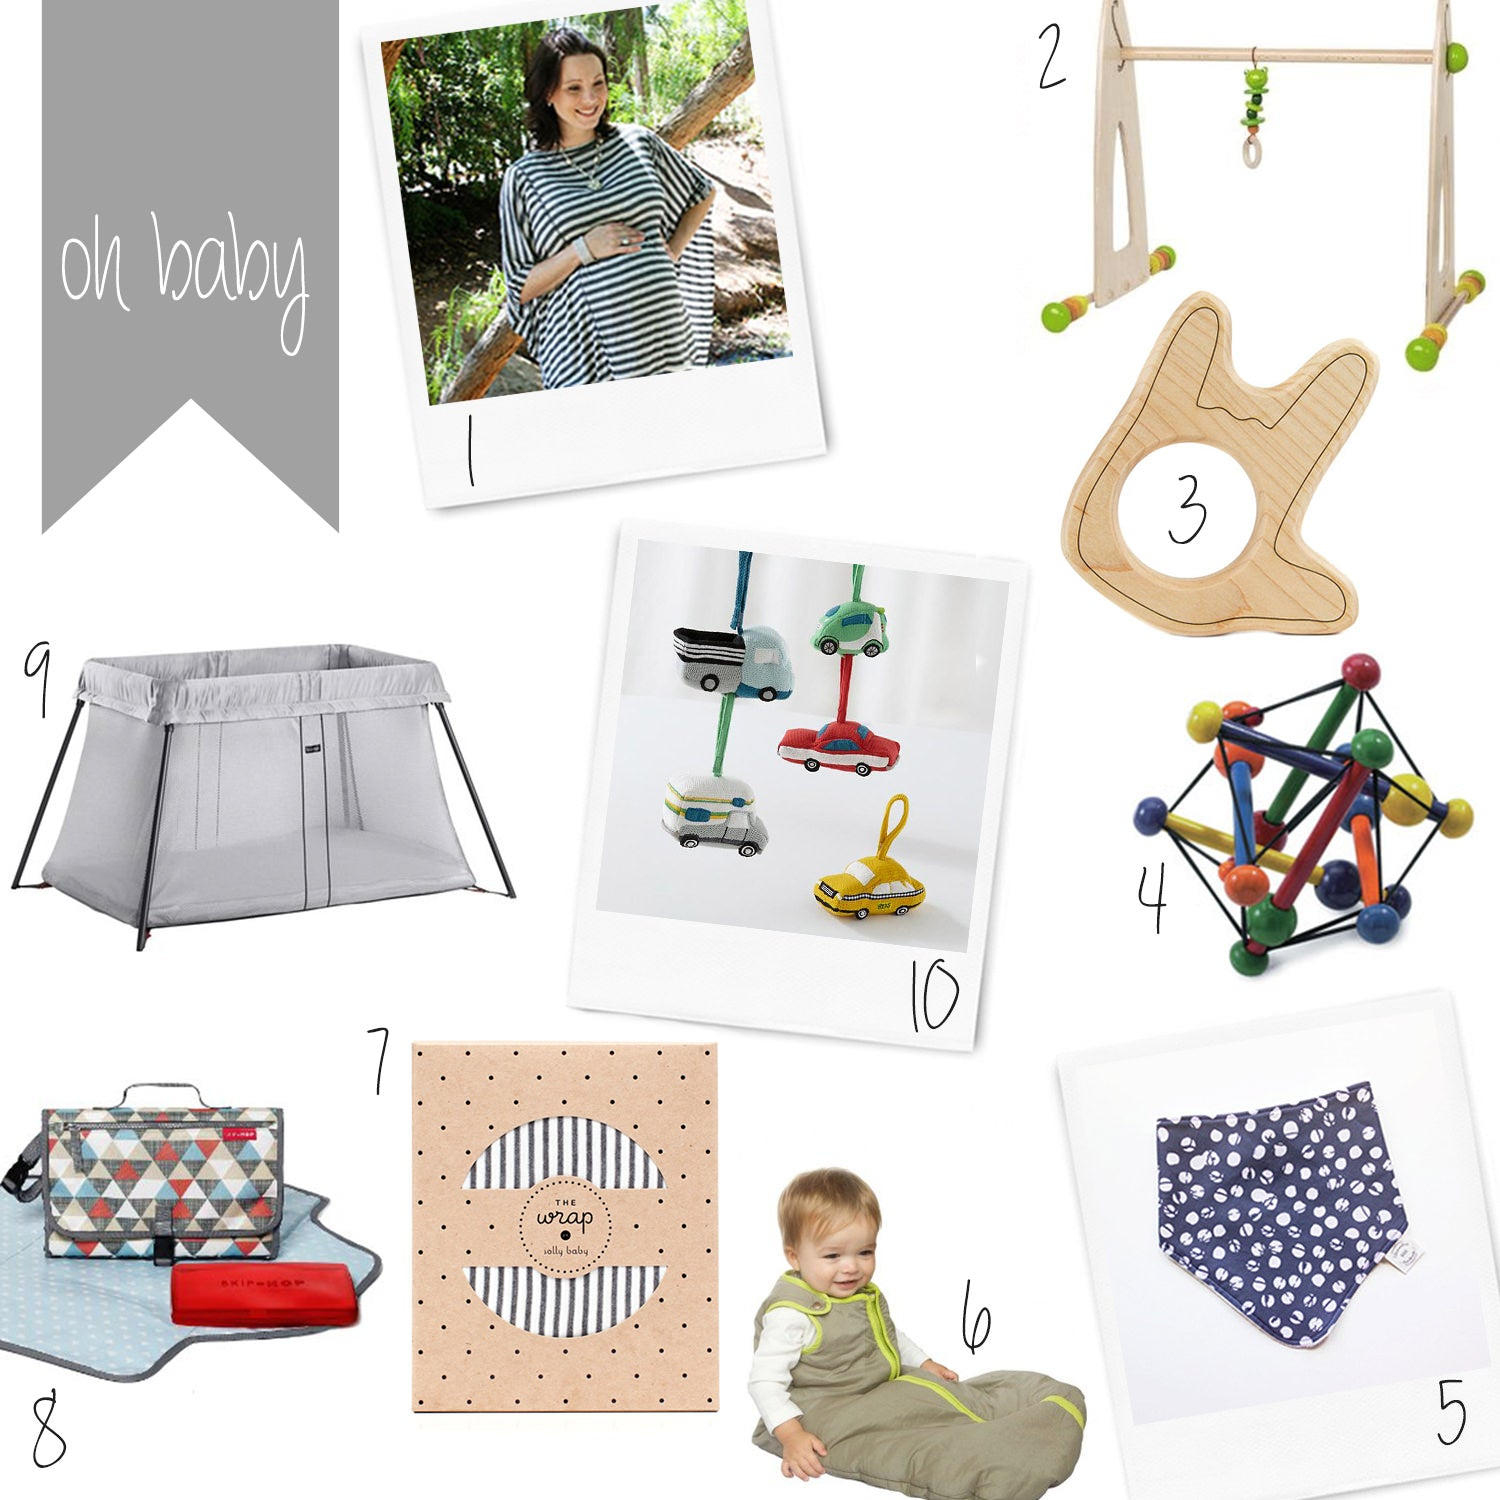 What to register for, baby registry, best baby registry, preparing for baby, baby prep, must haves for baby, skip hop, baby bjorn, solly wrap, dria cover, land of nod, bibs, baby bibs, baby bandanas, nursing cover, pack-n-play, sleep sack, best baby toys, chew toys, teething, baby teething tips, teething ideas, all natural teething ideas